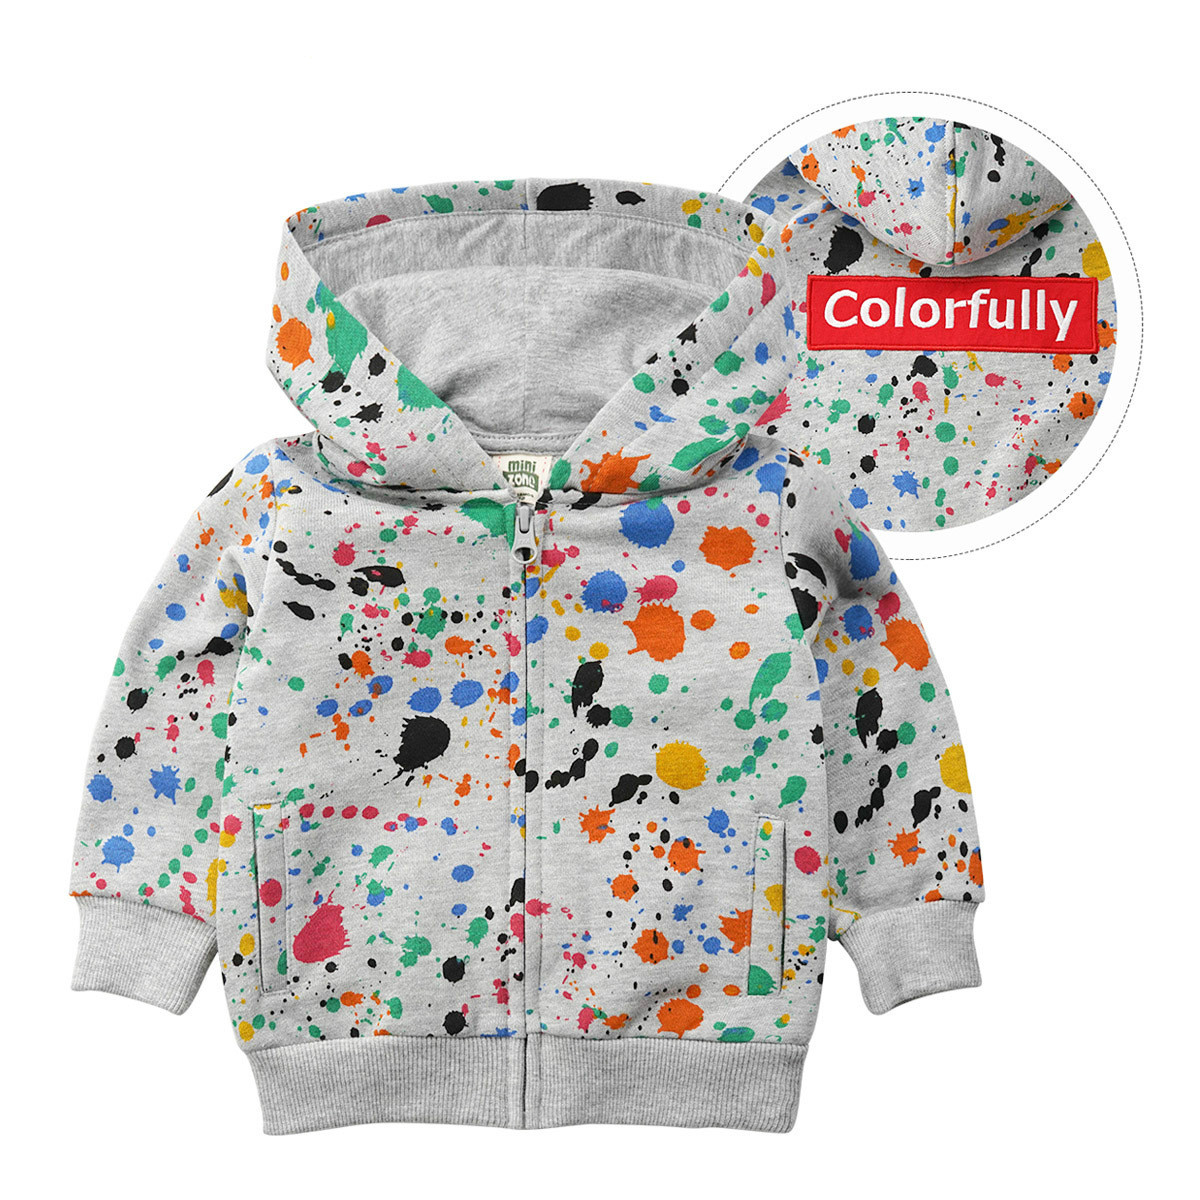 Fashion Outfit Boy And Girls Long Sleeves Coats Children's Wear Clothes Jacket Spring And Autumn Hooded Coat Zipper Baby Blouse long sleeves guipure hollow out blouse